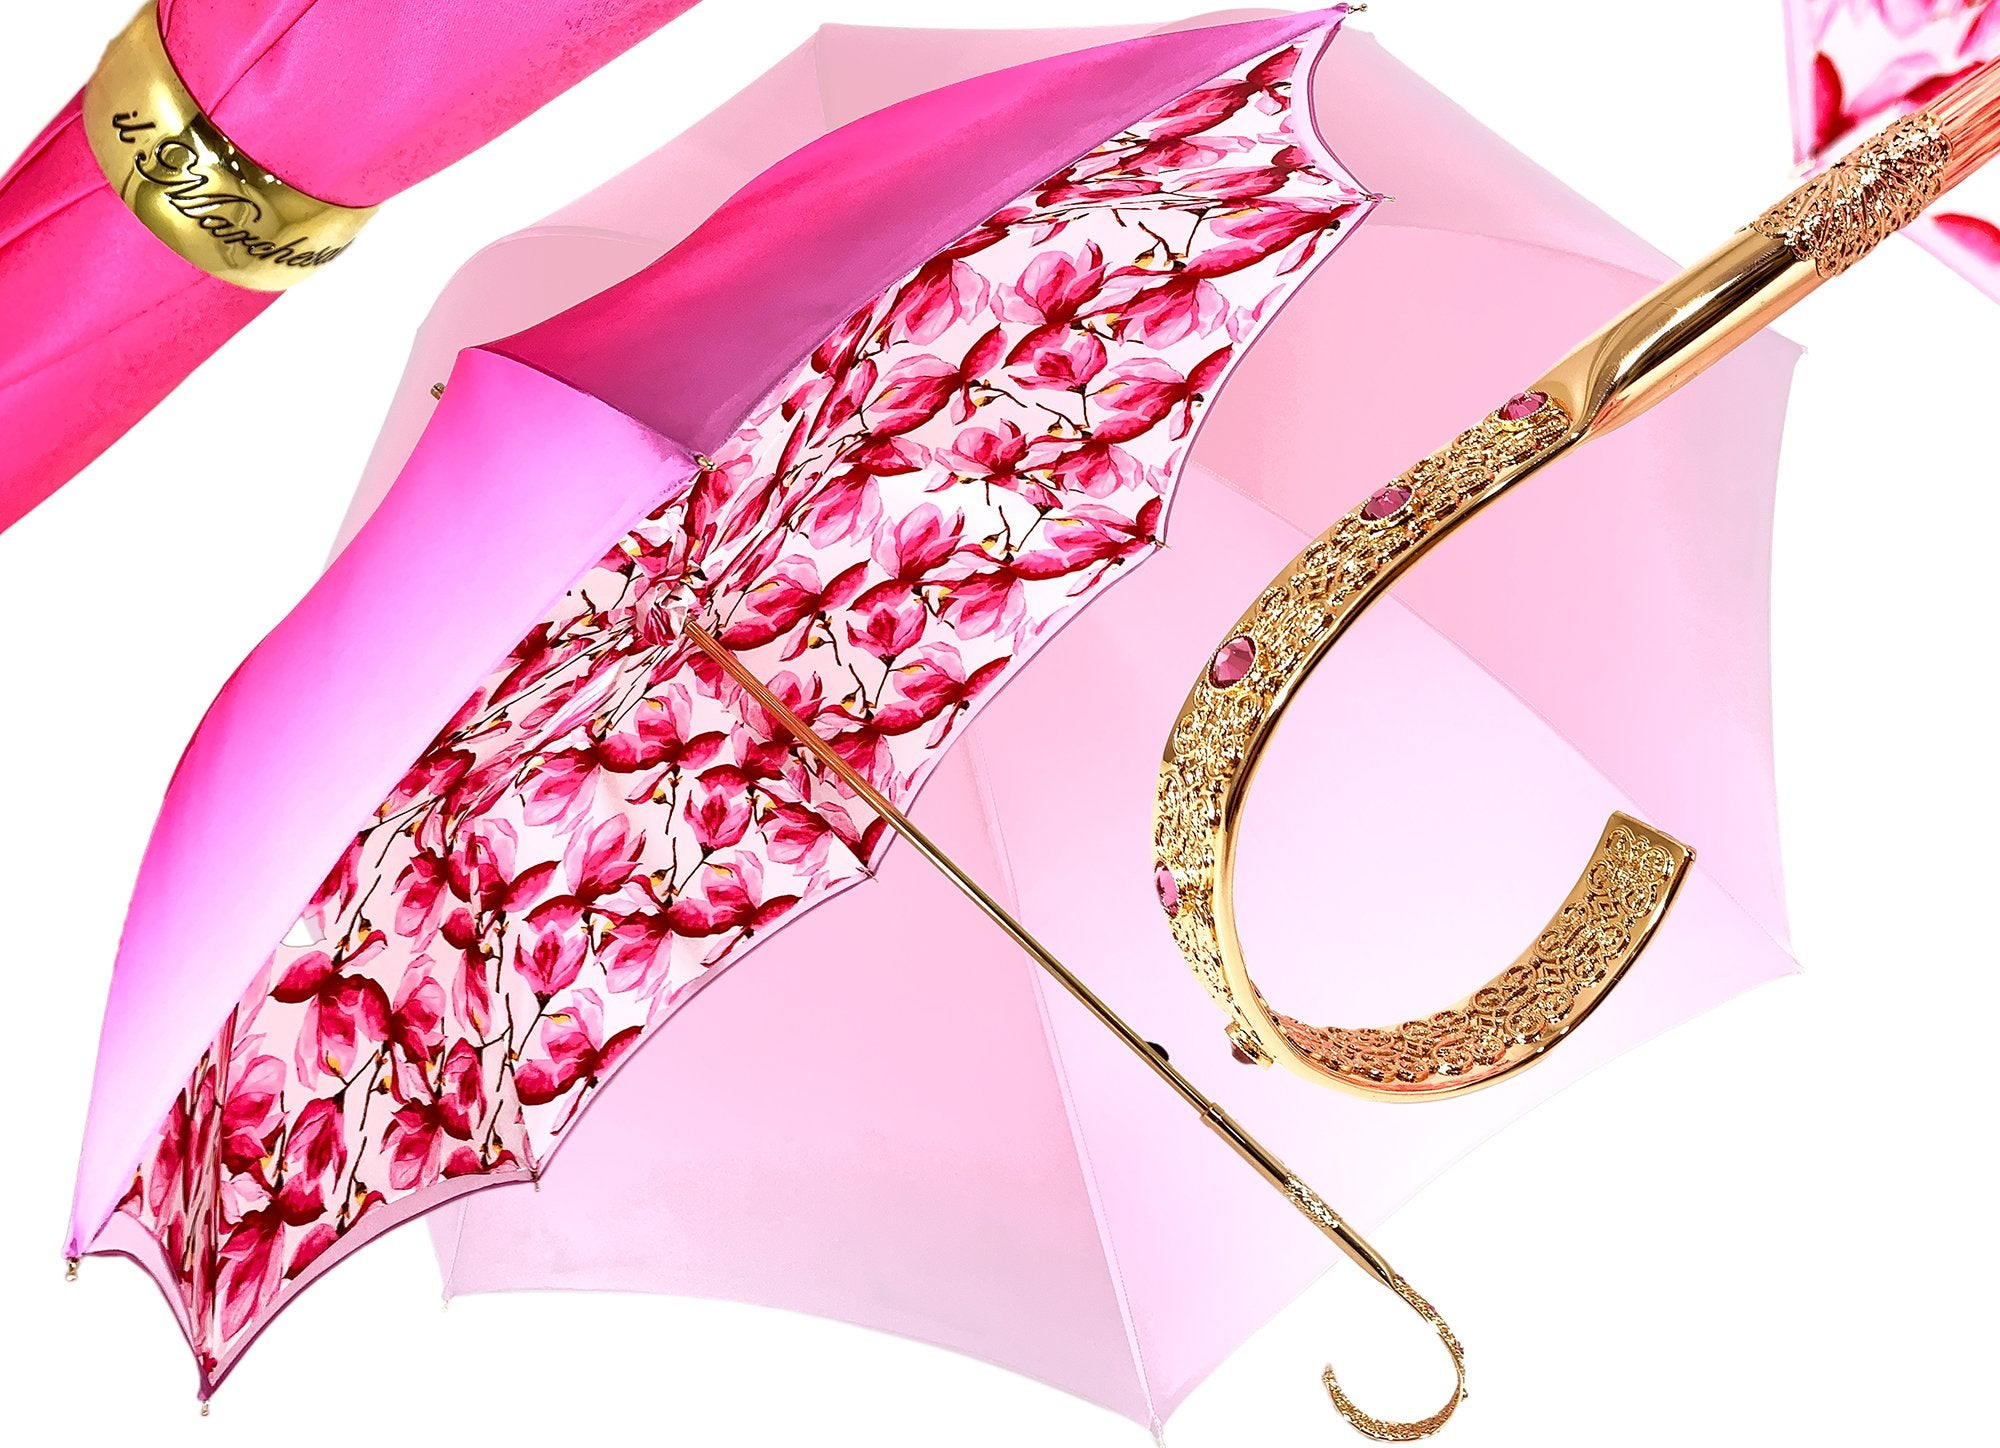 Lovely Shade Fuchsia/Pink Umbrella - Exclusive Flower Design - il-marchesato